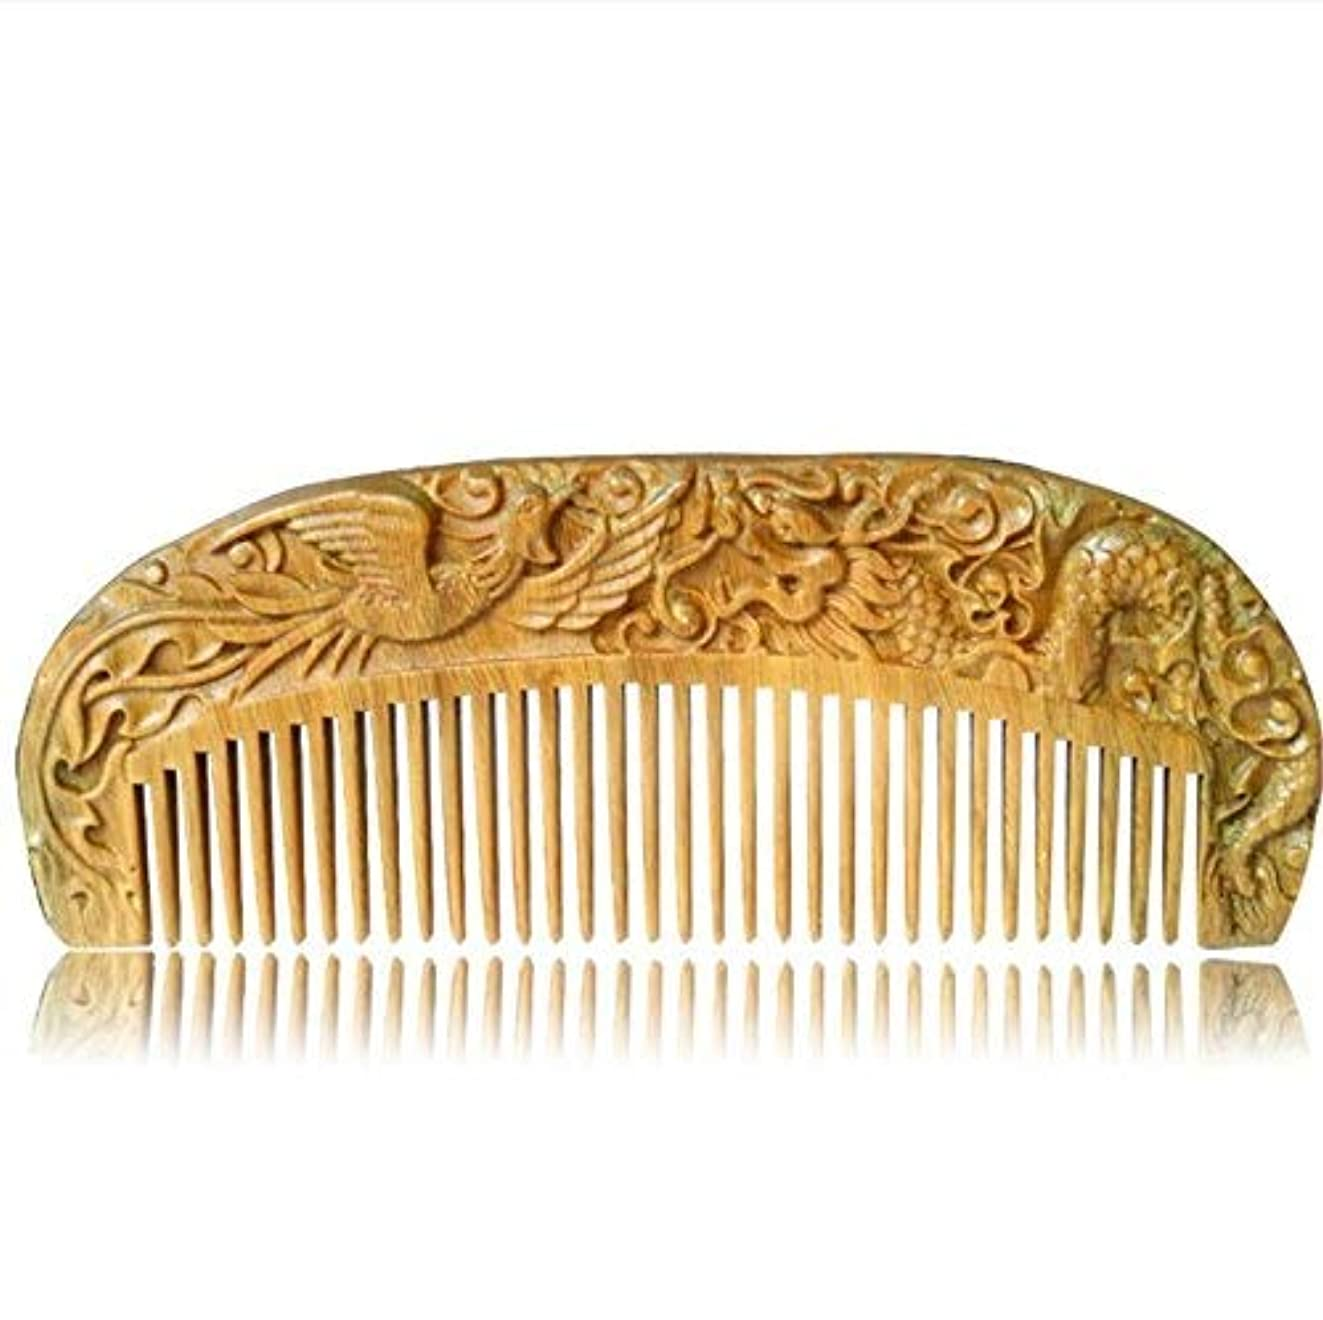 摂氏度ノーブル撤回するHandmade Carved Natural Sandalwood Hair Comb - Anti-Static Sandalwood Hair Comb Beard Brush Rake Comb Handmade Engraving Dragon and Phoenix [並行輸入品]